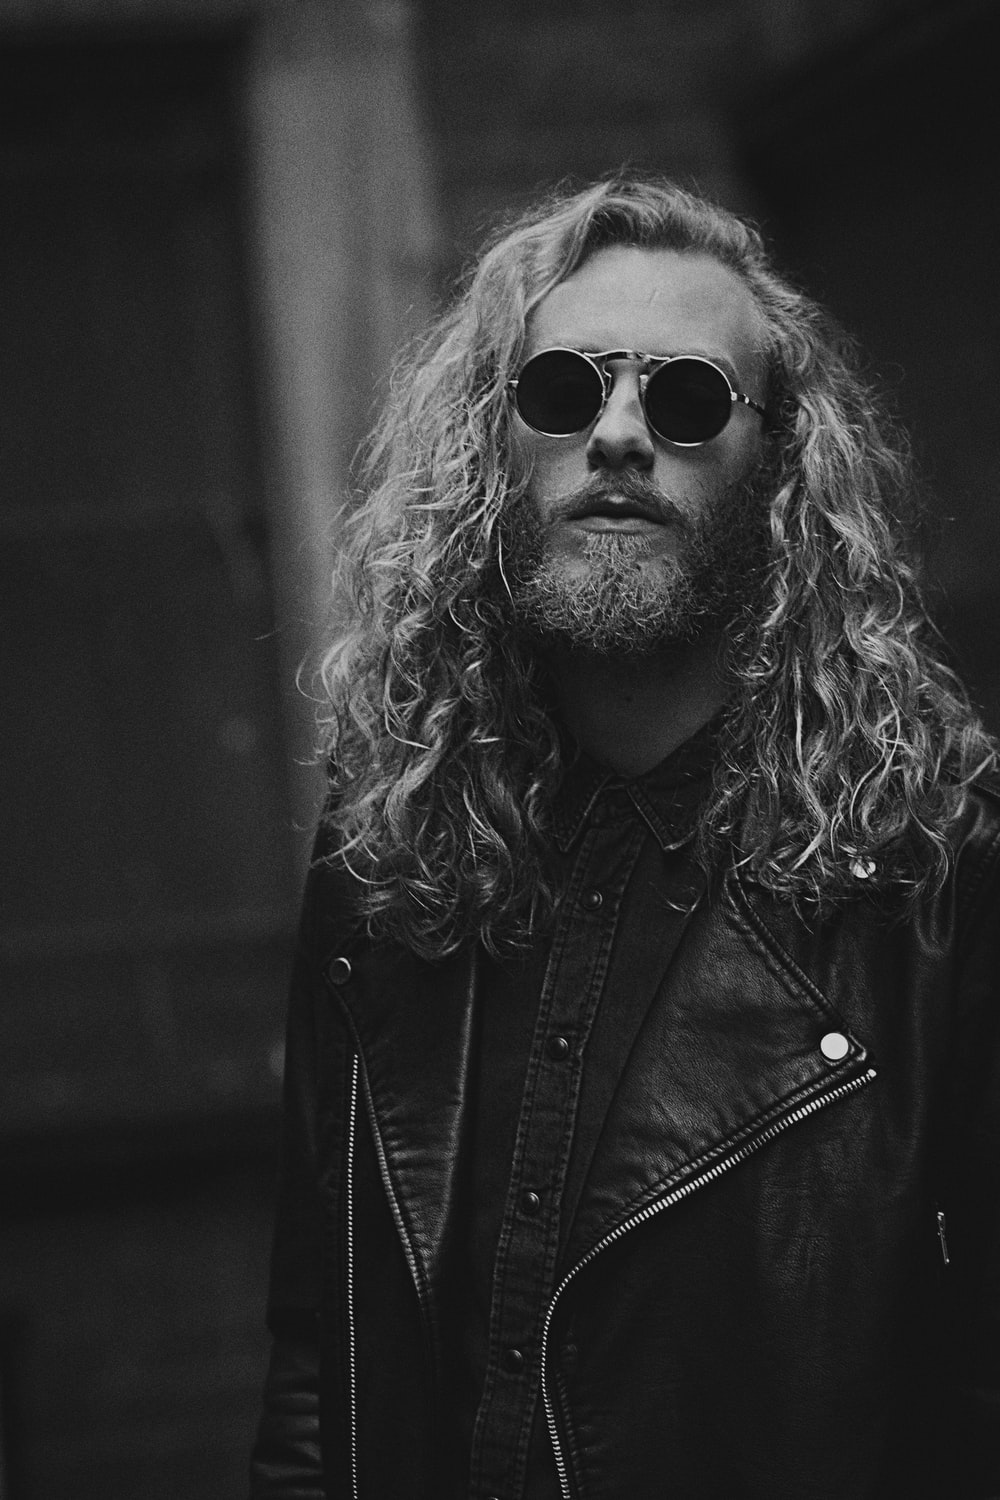 grayscale photo of man in leather jacket